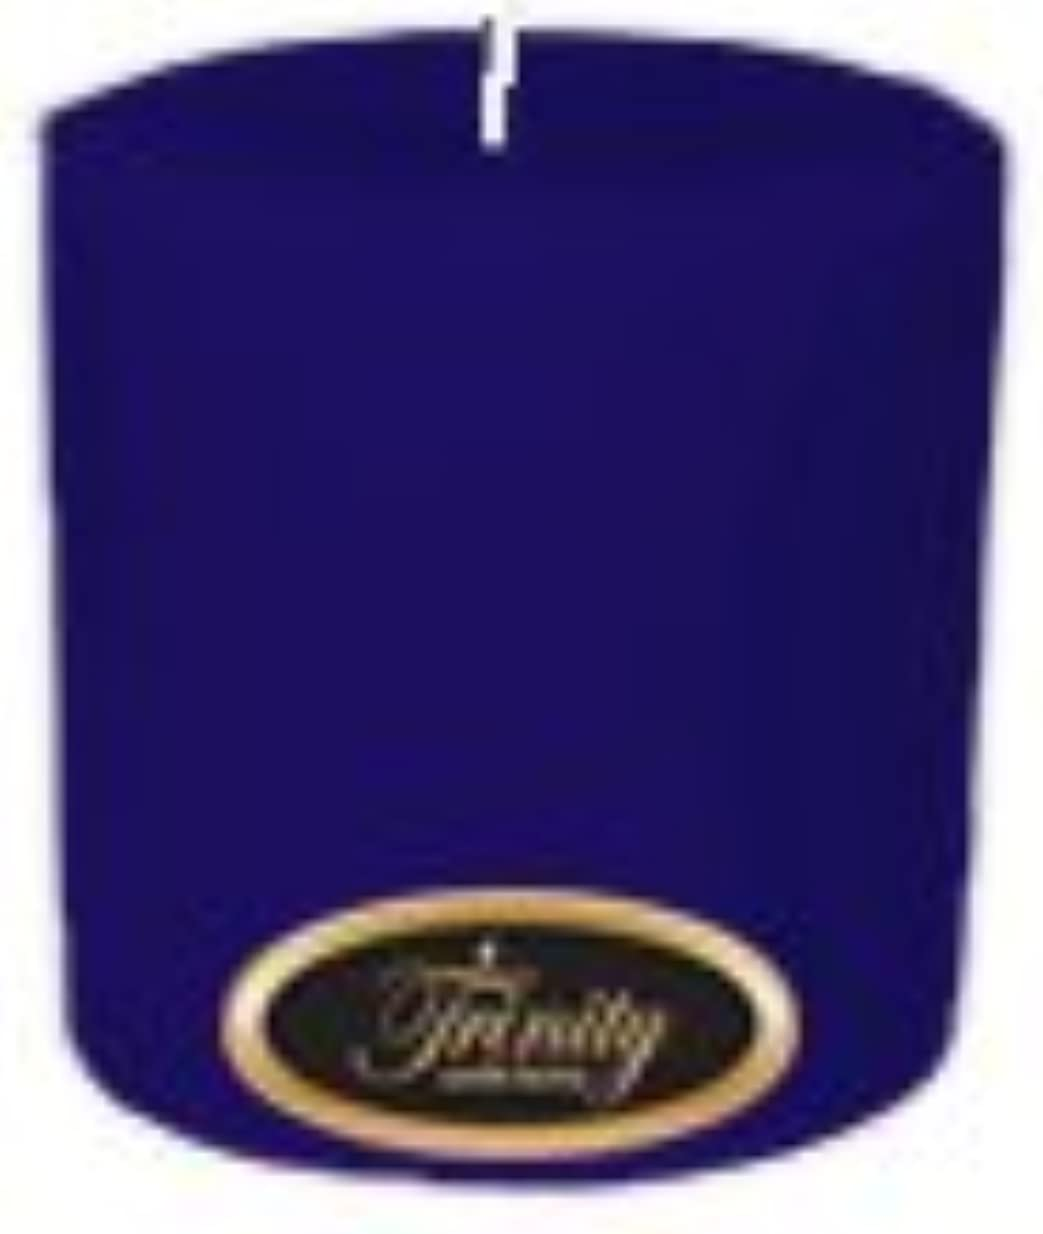 判読できない情熱的名誉Trinity Candle工場 – Blueberry Fields – Pillar Candle – 4 x 4